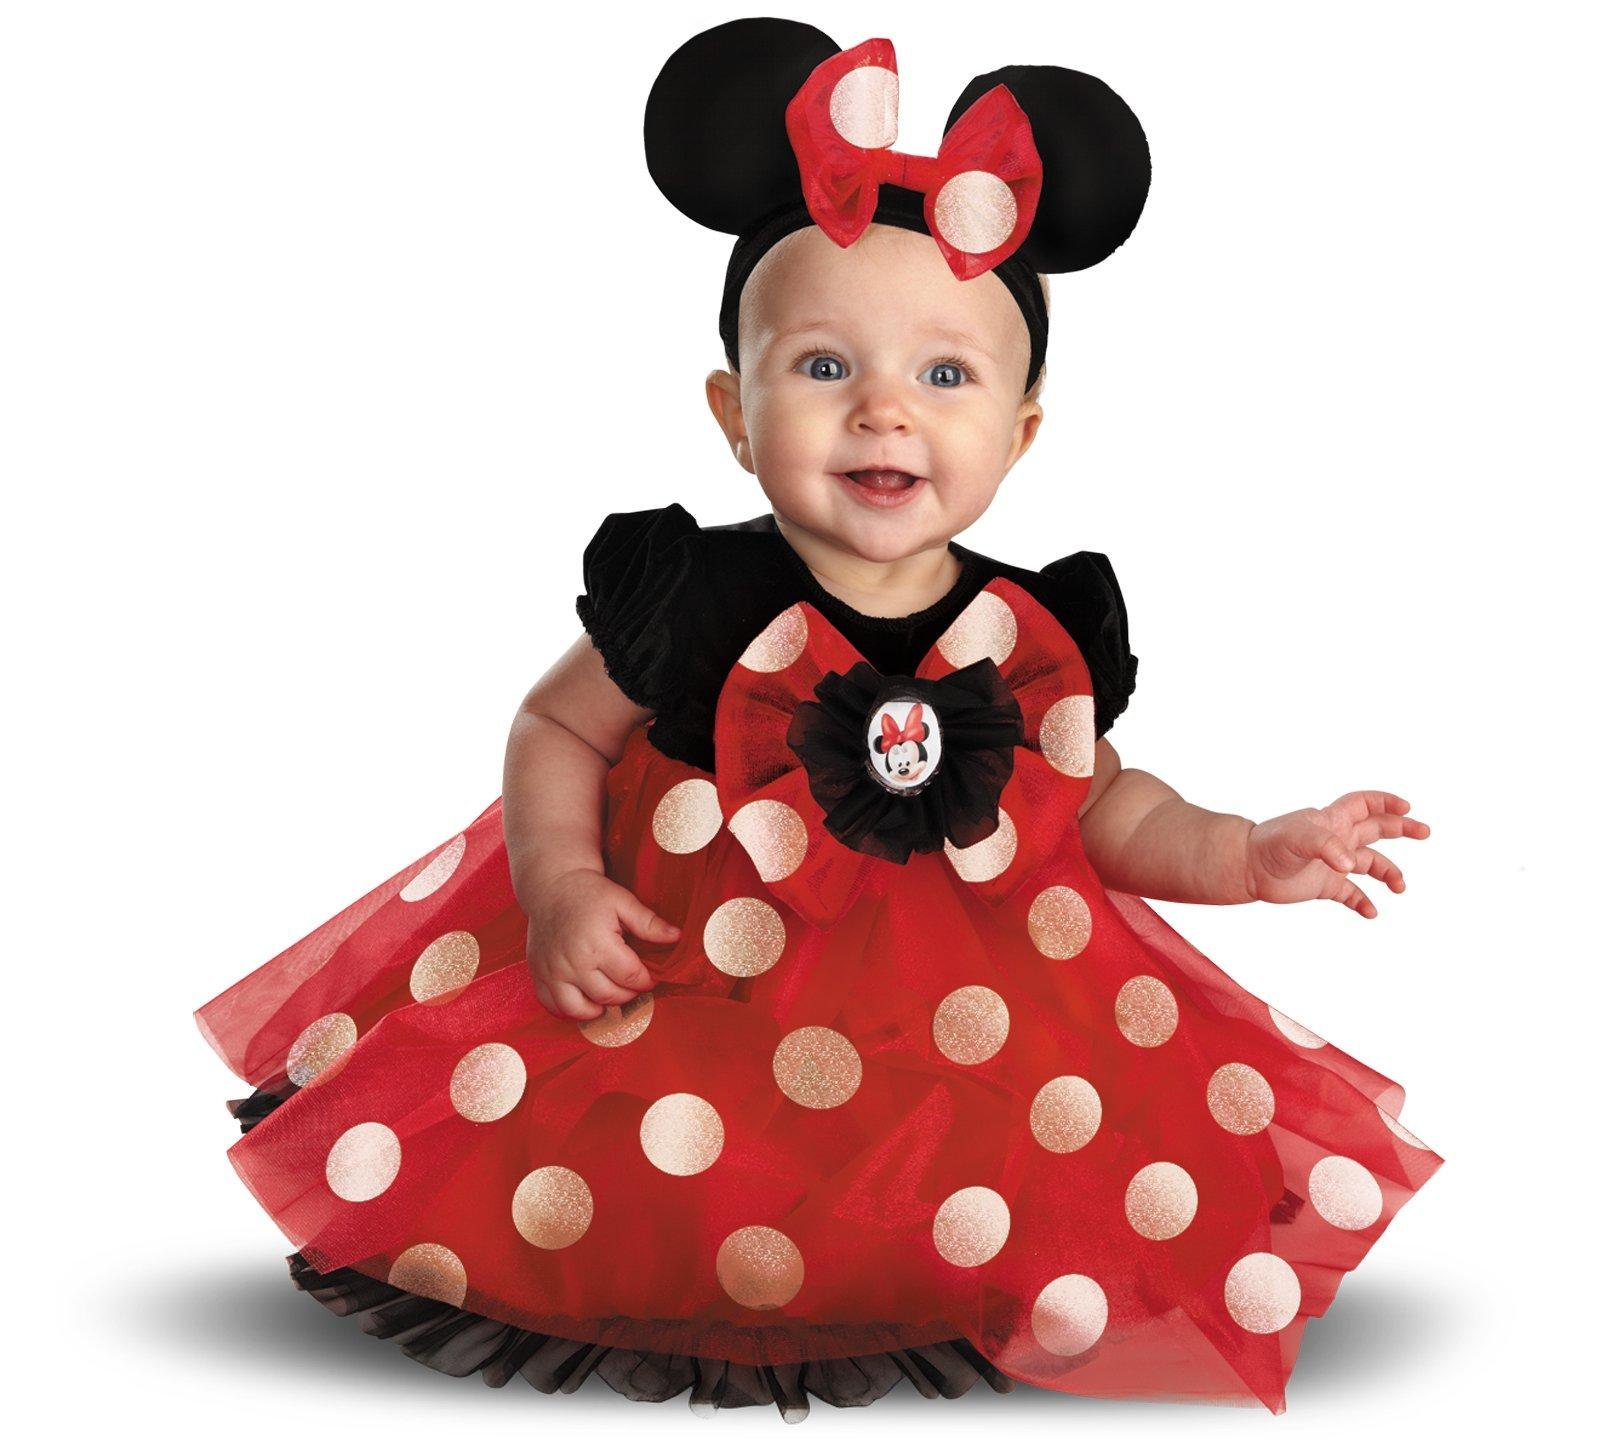 Minnie Mouse Infant Costume HK$498 00 LET S PARTY PANY